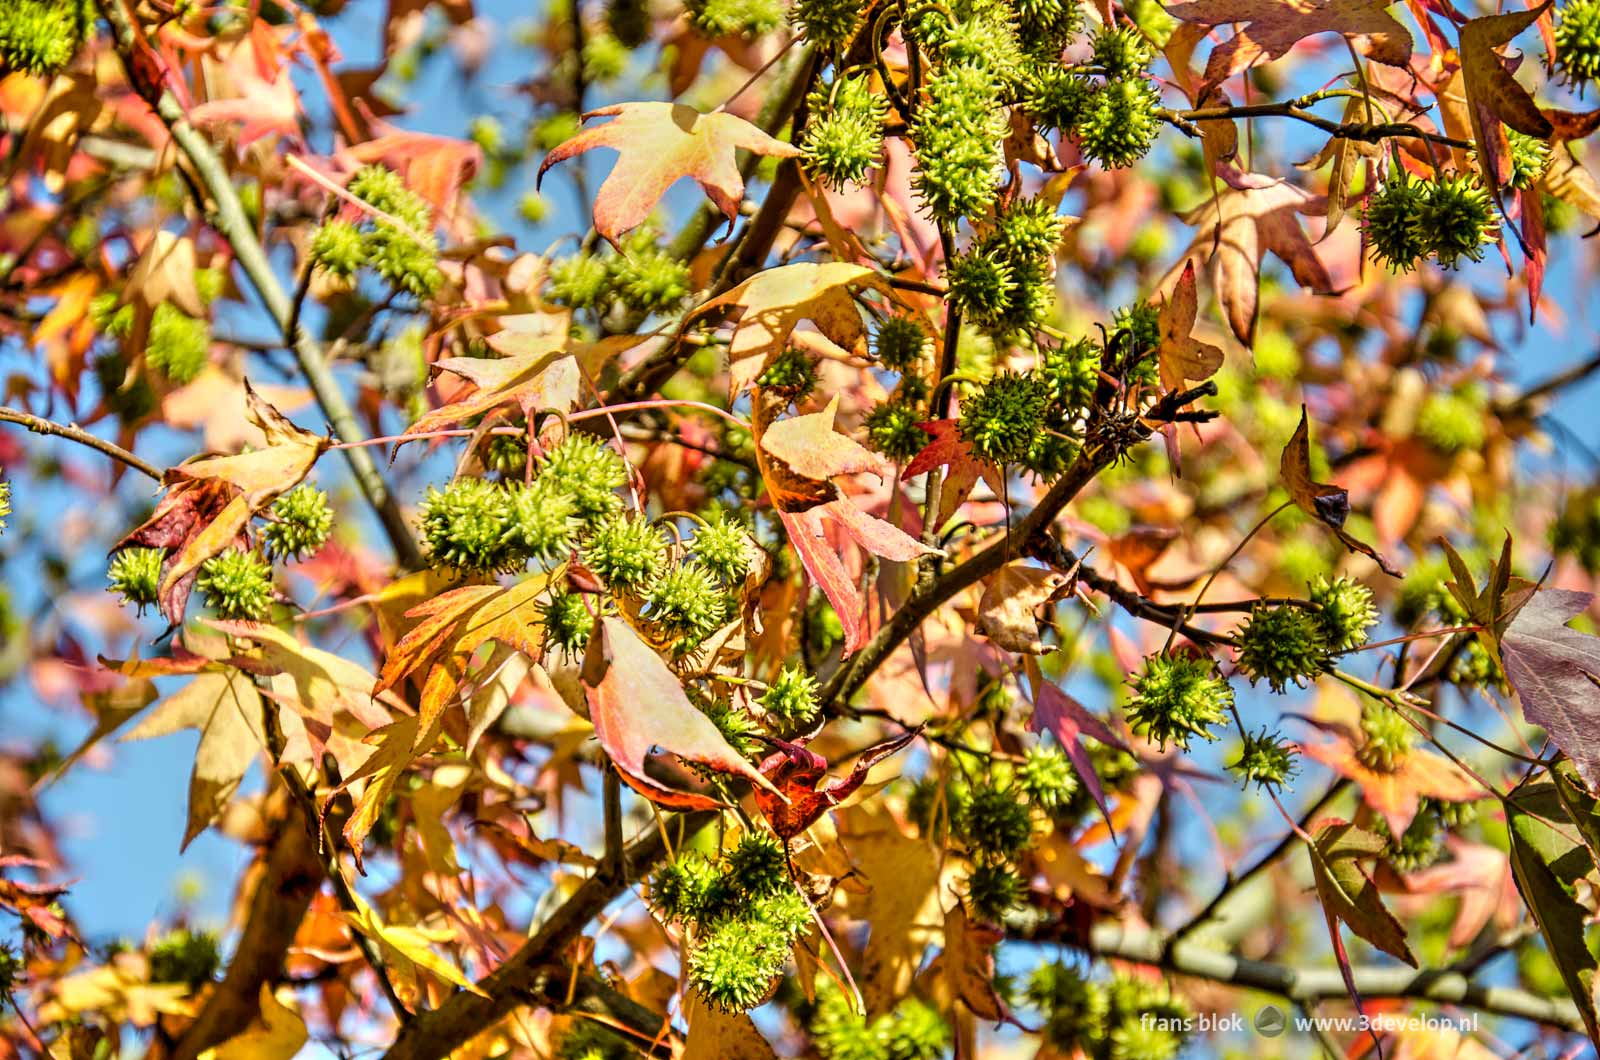 A sweetgum tree with red cannabis-shaped leafs and green spiky fruits, seen against a blue sky